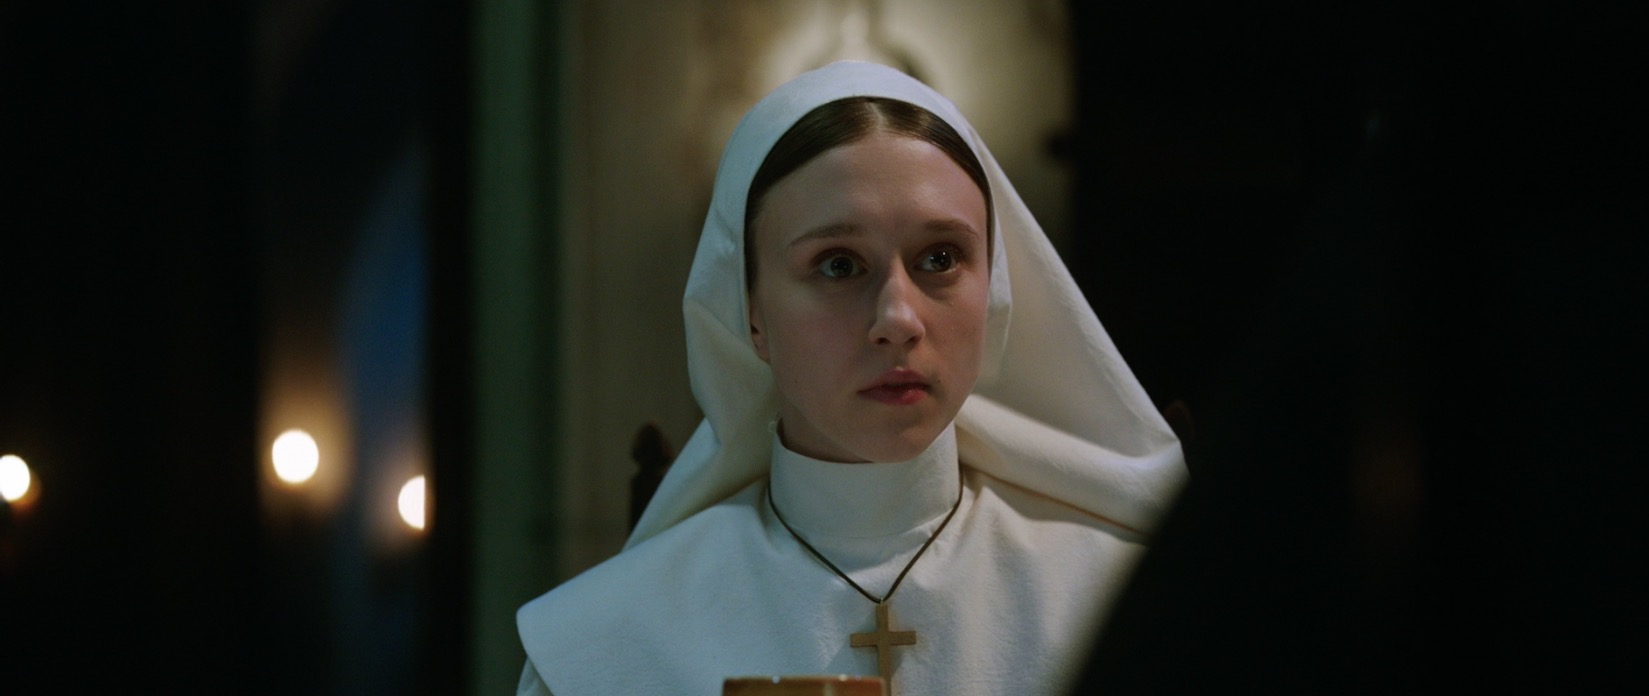 [Set Visit] 'The Nun' Star Taissa Farmiga On Entering 'The